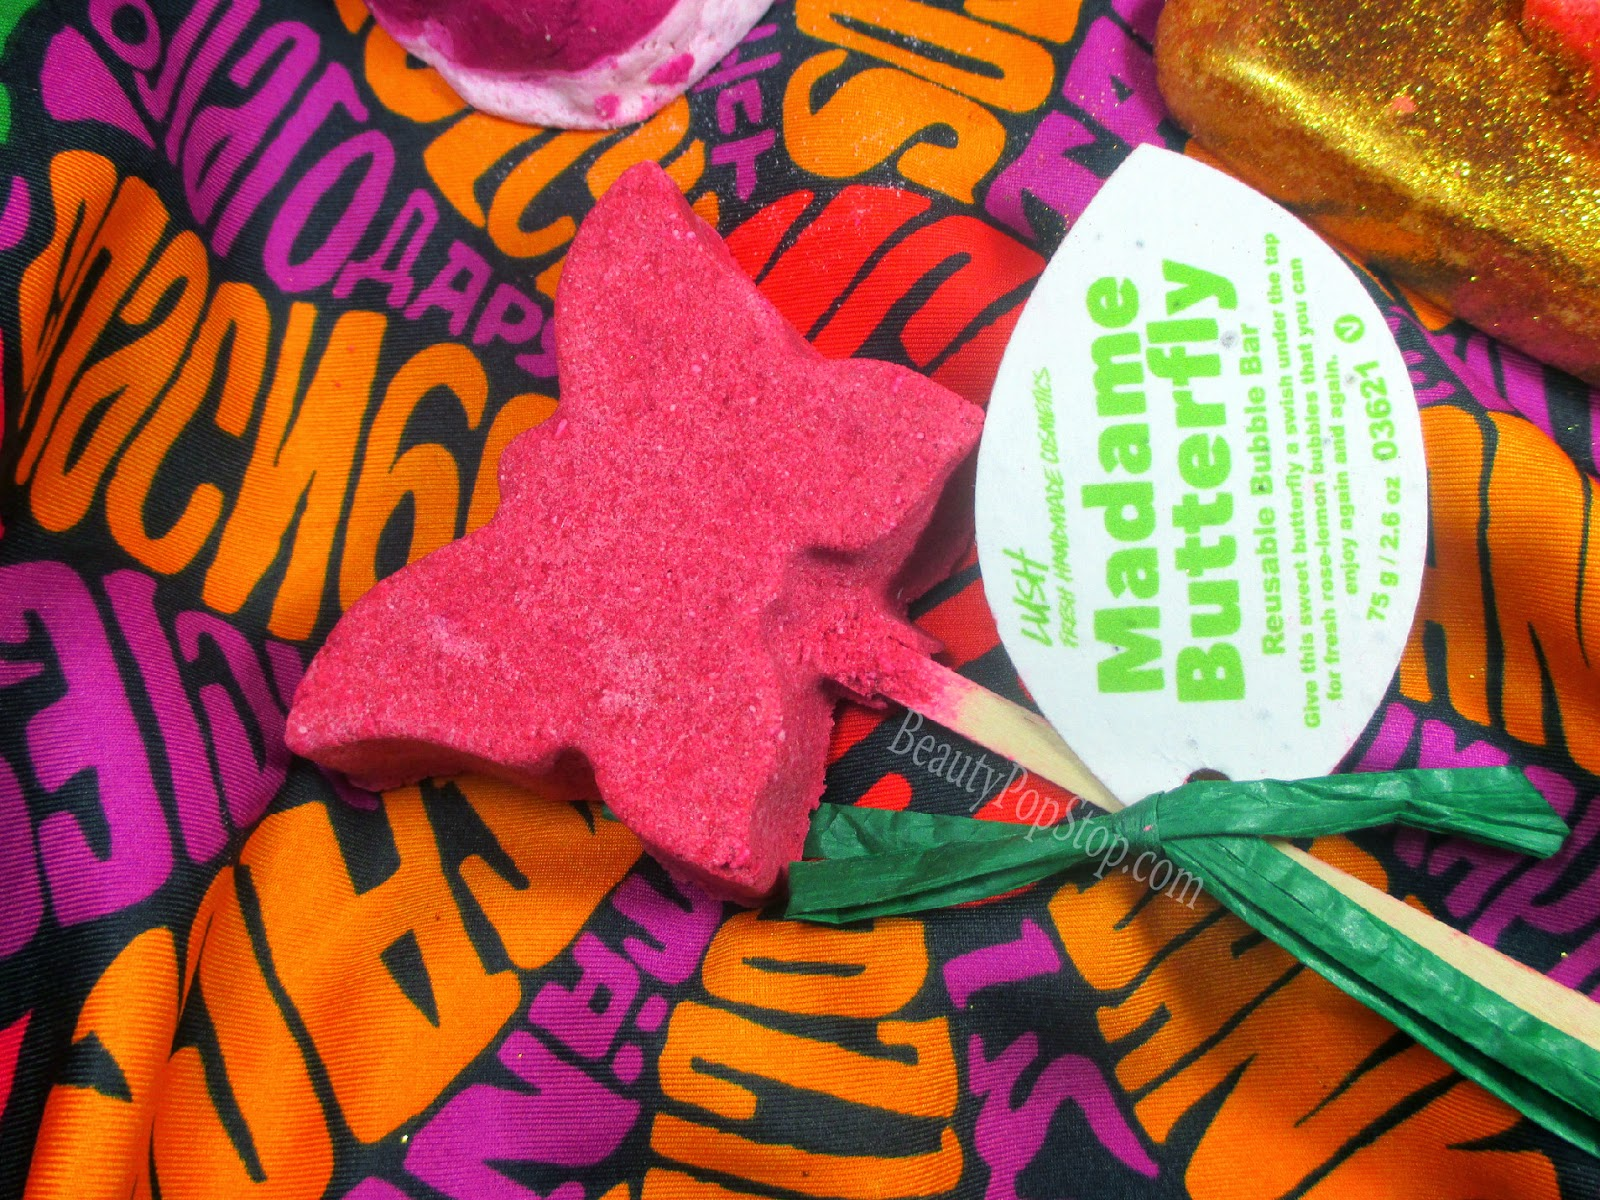 lush madame butterfly bubble bar review